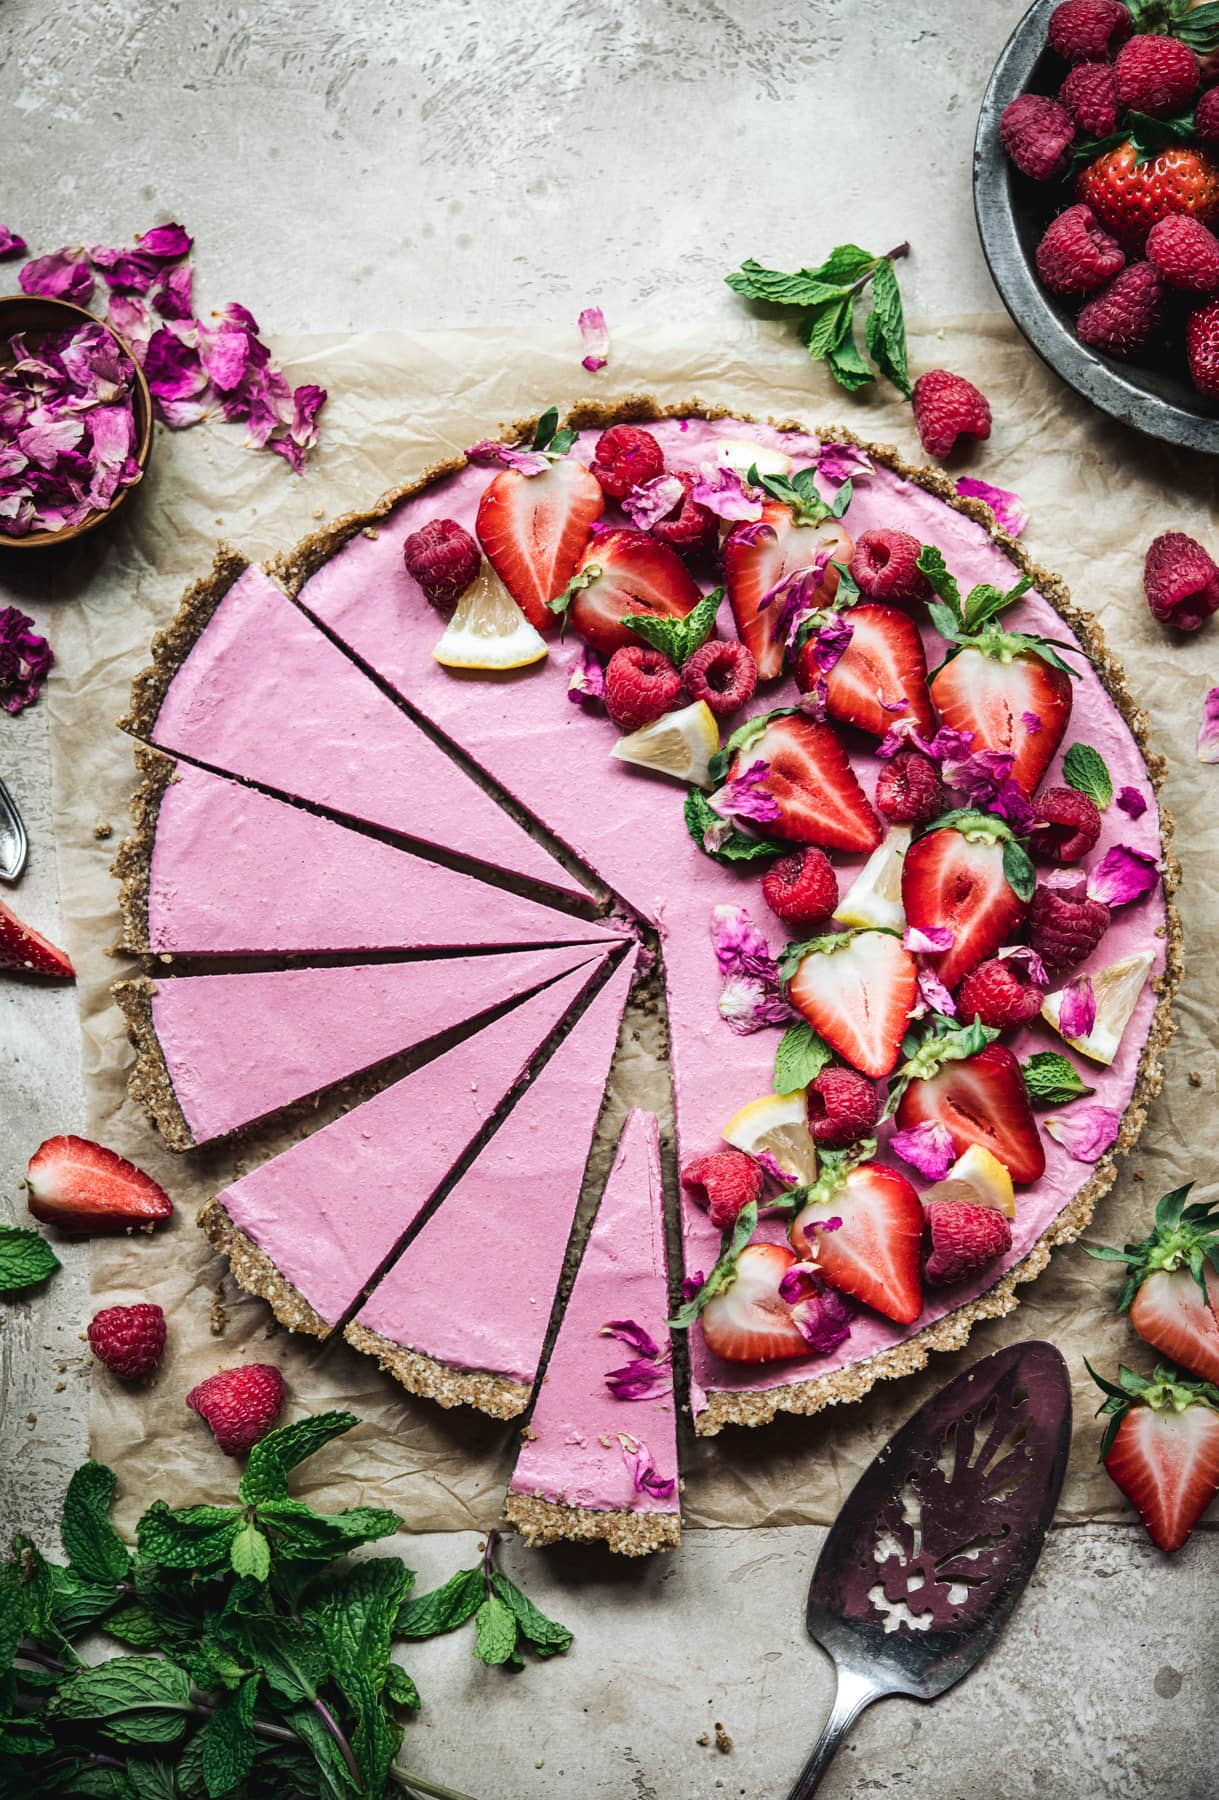 Overhead view of vegan strawberry mousse tart garnished with fresh berries and sliced thinly on parchment paper